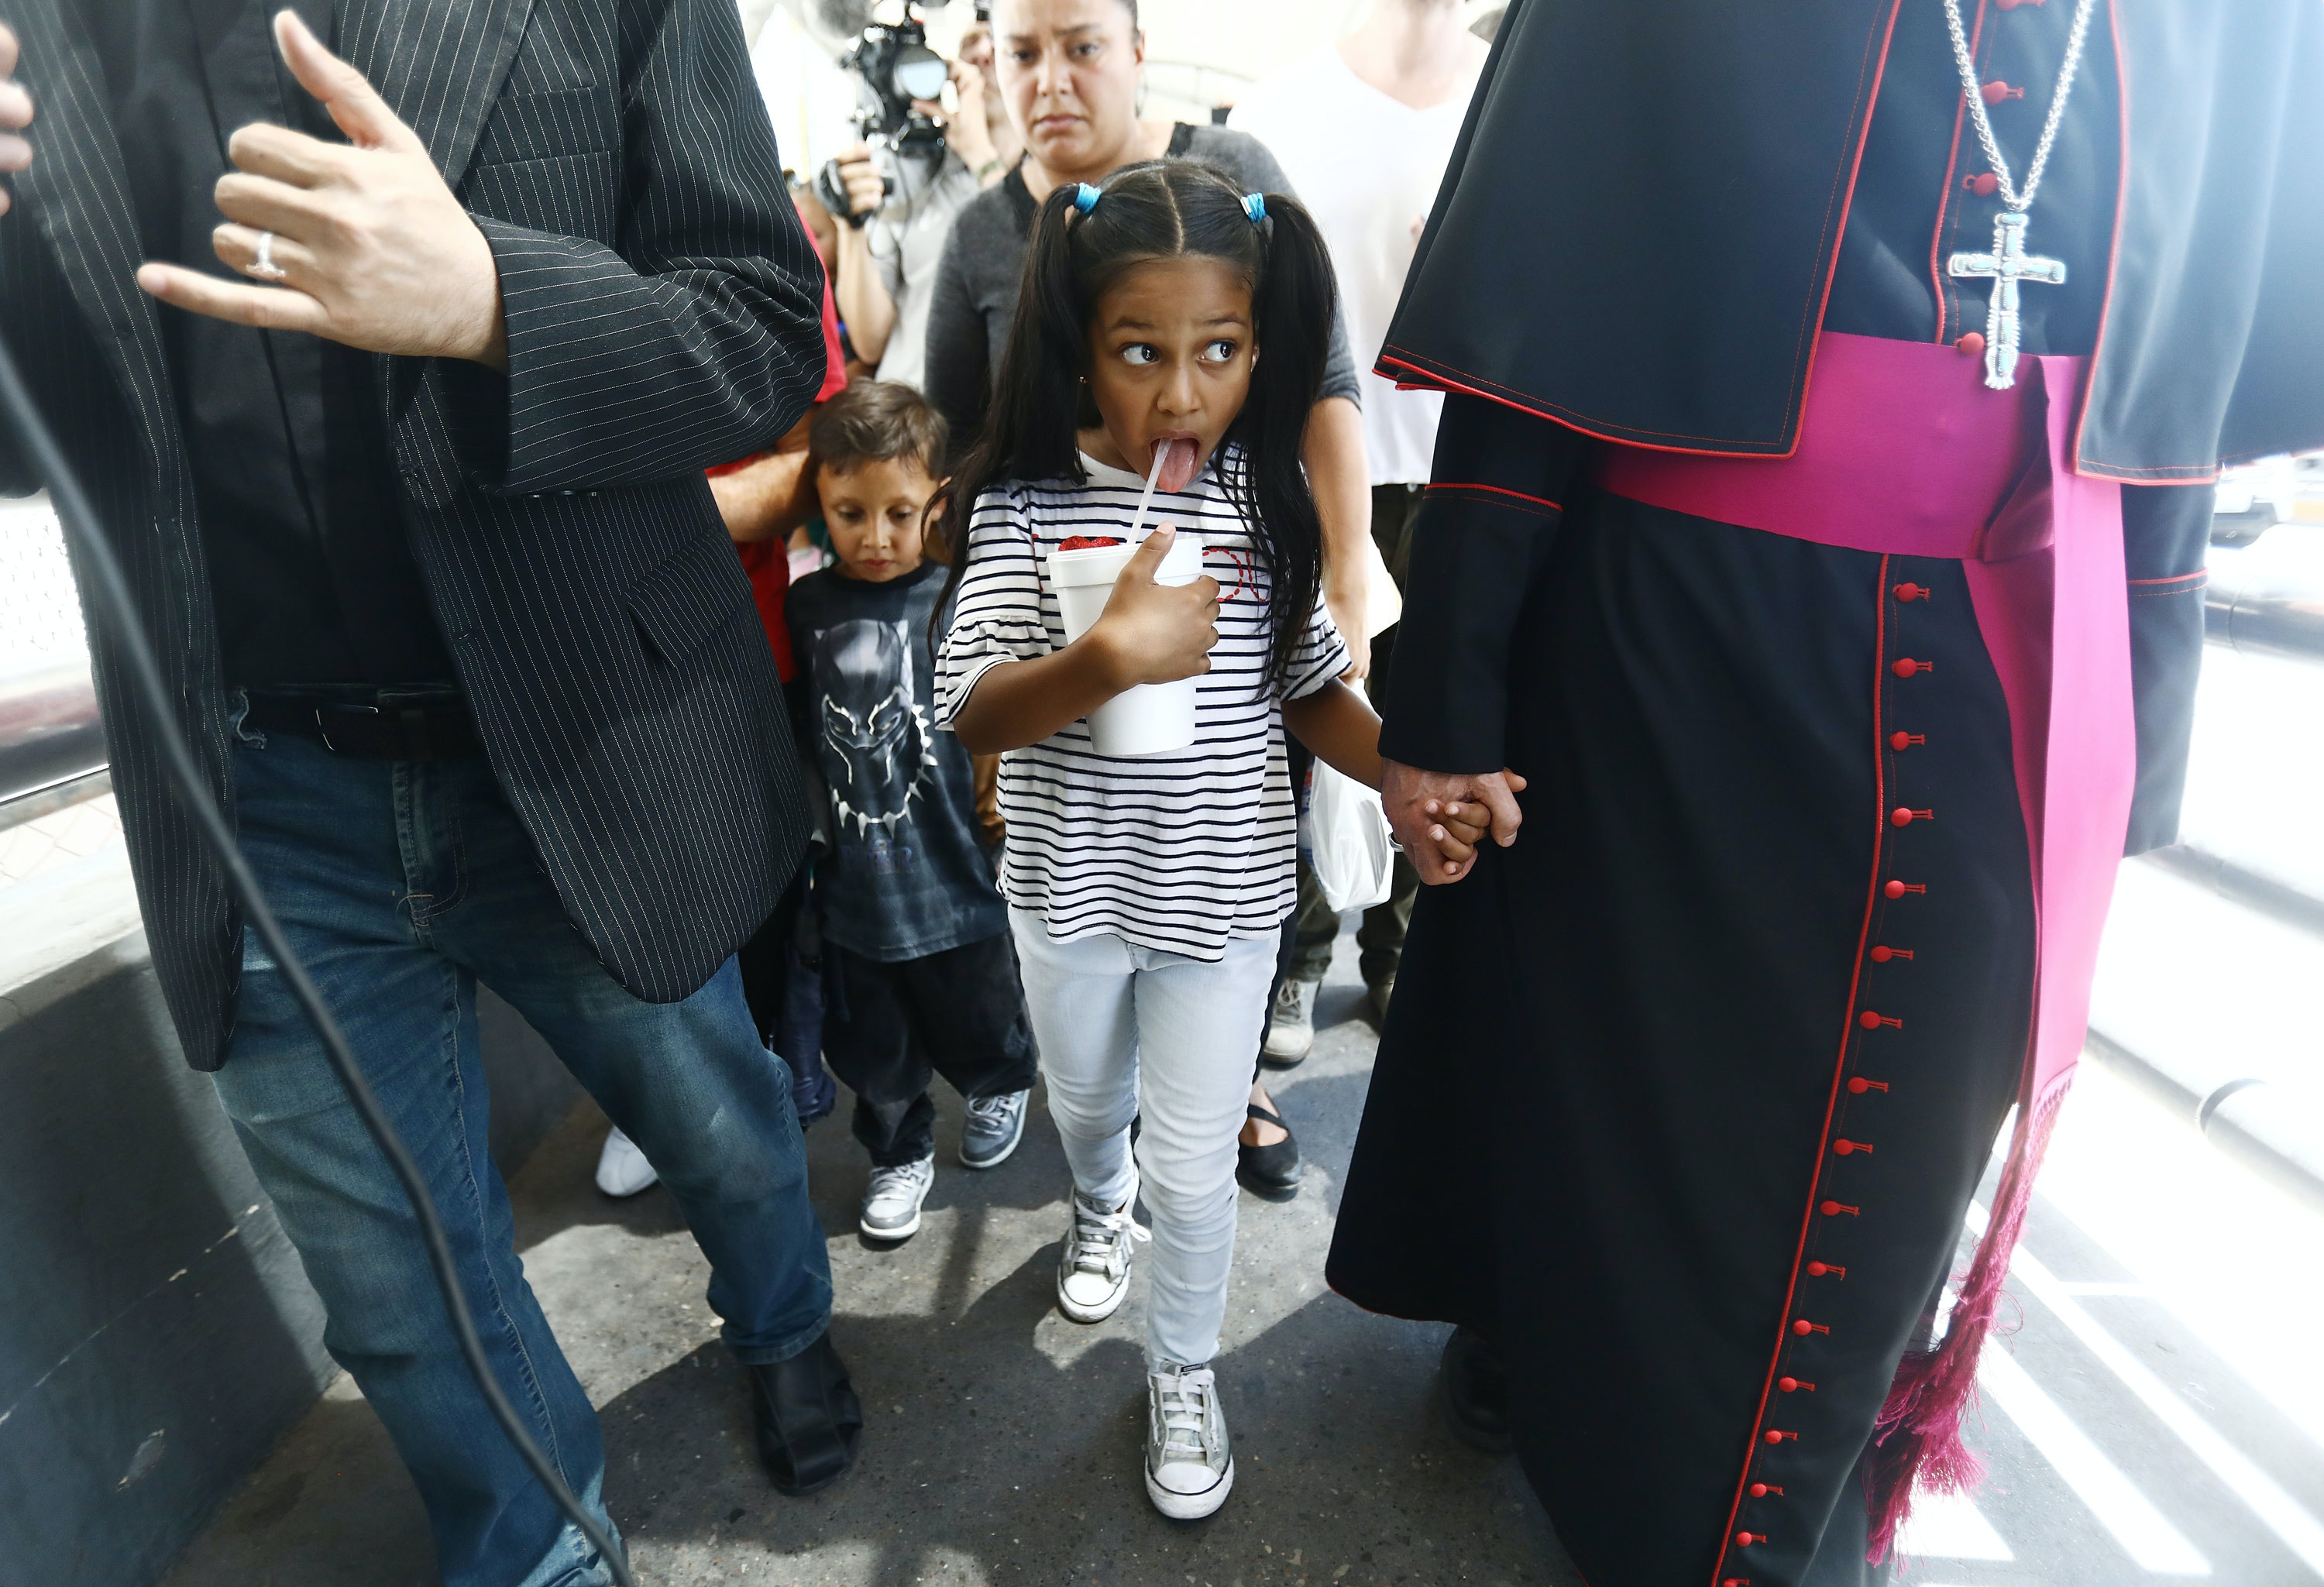 CIUDAD JUAREZ, MEXICO - JUNE 27: El Paso Bishop Mark Seitz (R) escorts Celsia Palma (C), 9, from Honduras, as they cross the Paso Del Norte Port of Entry bridge towards the U.S. on June 27, 2019, in Ciudad Juarez, Mexico. Seitz escorted Celsia and other family members across the port of entry to be processed by U.S. immigration authorities. Earlier, Seitz and clergy from the Diocese of Ciudad Juarez held a prayer with migrants who were recently returned to Ciudad Juarez from El Paso because of the controversial 'Remain in Mexico' policy.